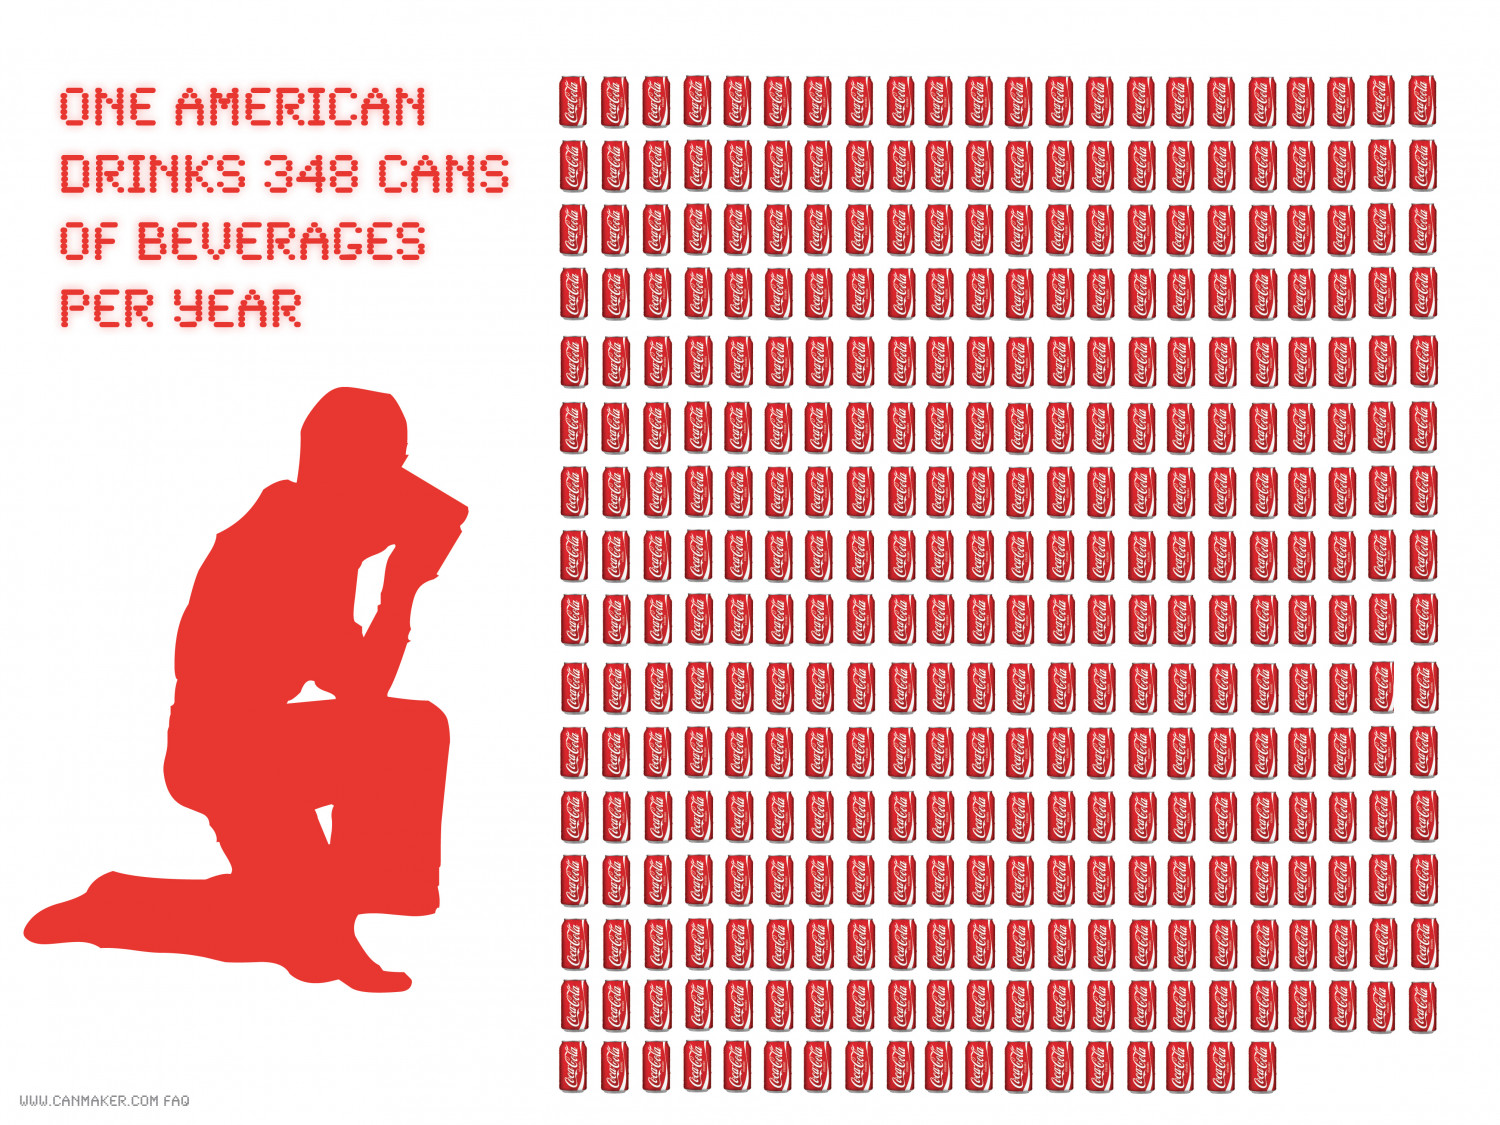 Each Americans drinks on average 348 cans of beverages per year Infographic